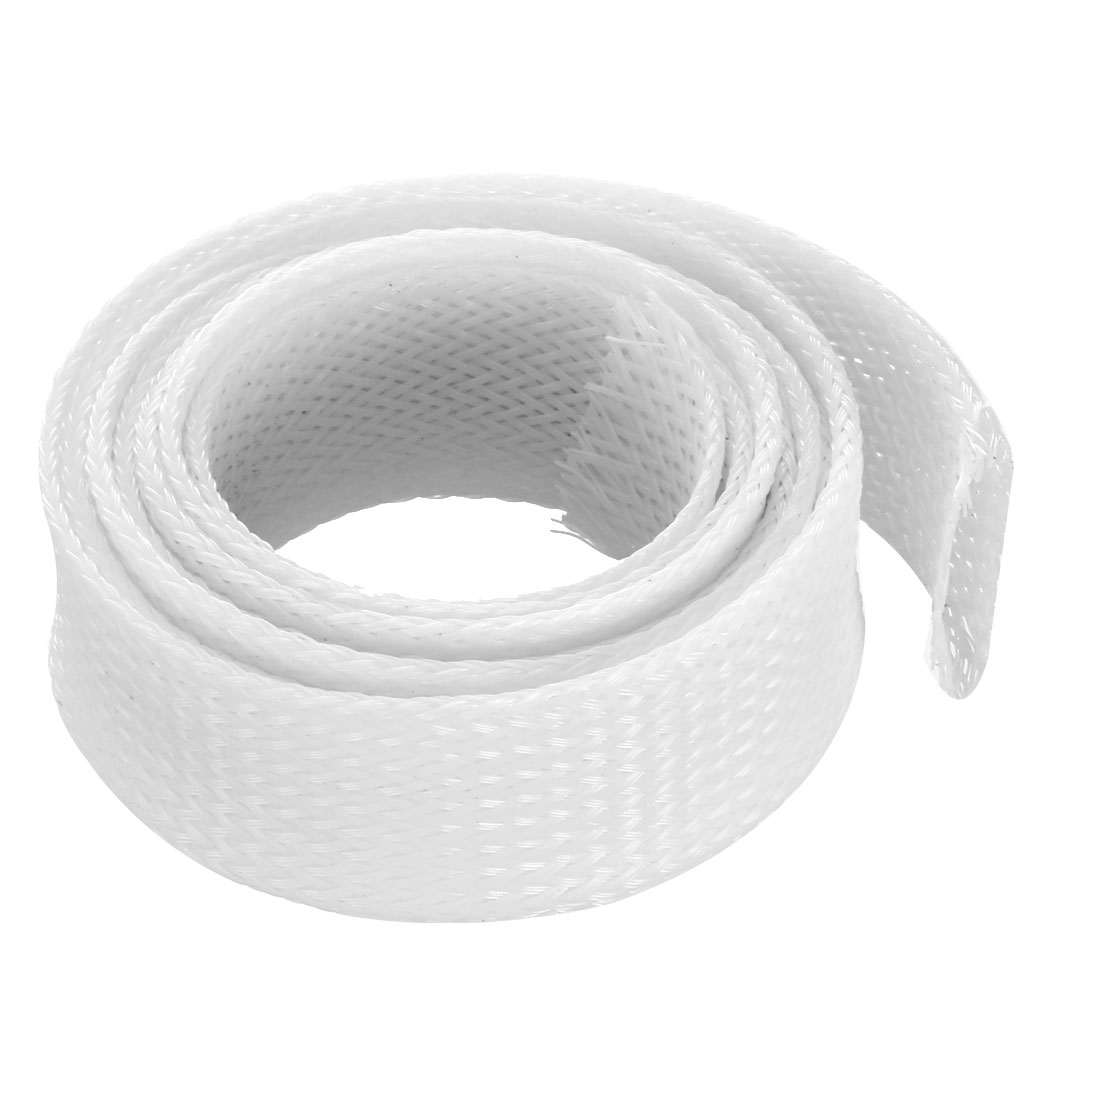 25mm Flat Dia Tight Braided PET Expandable Sleeving Cable Wrap Sheath White 1M